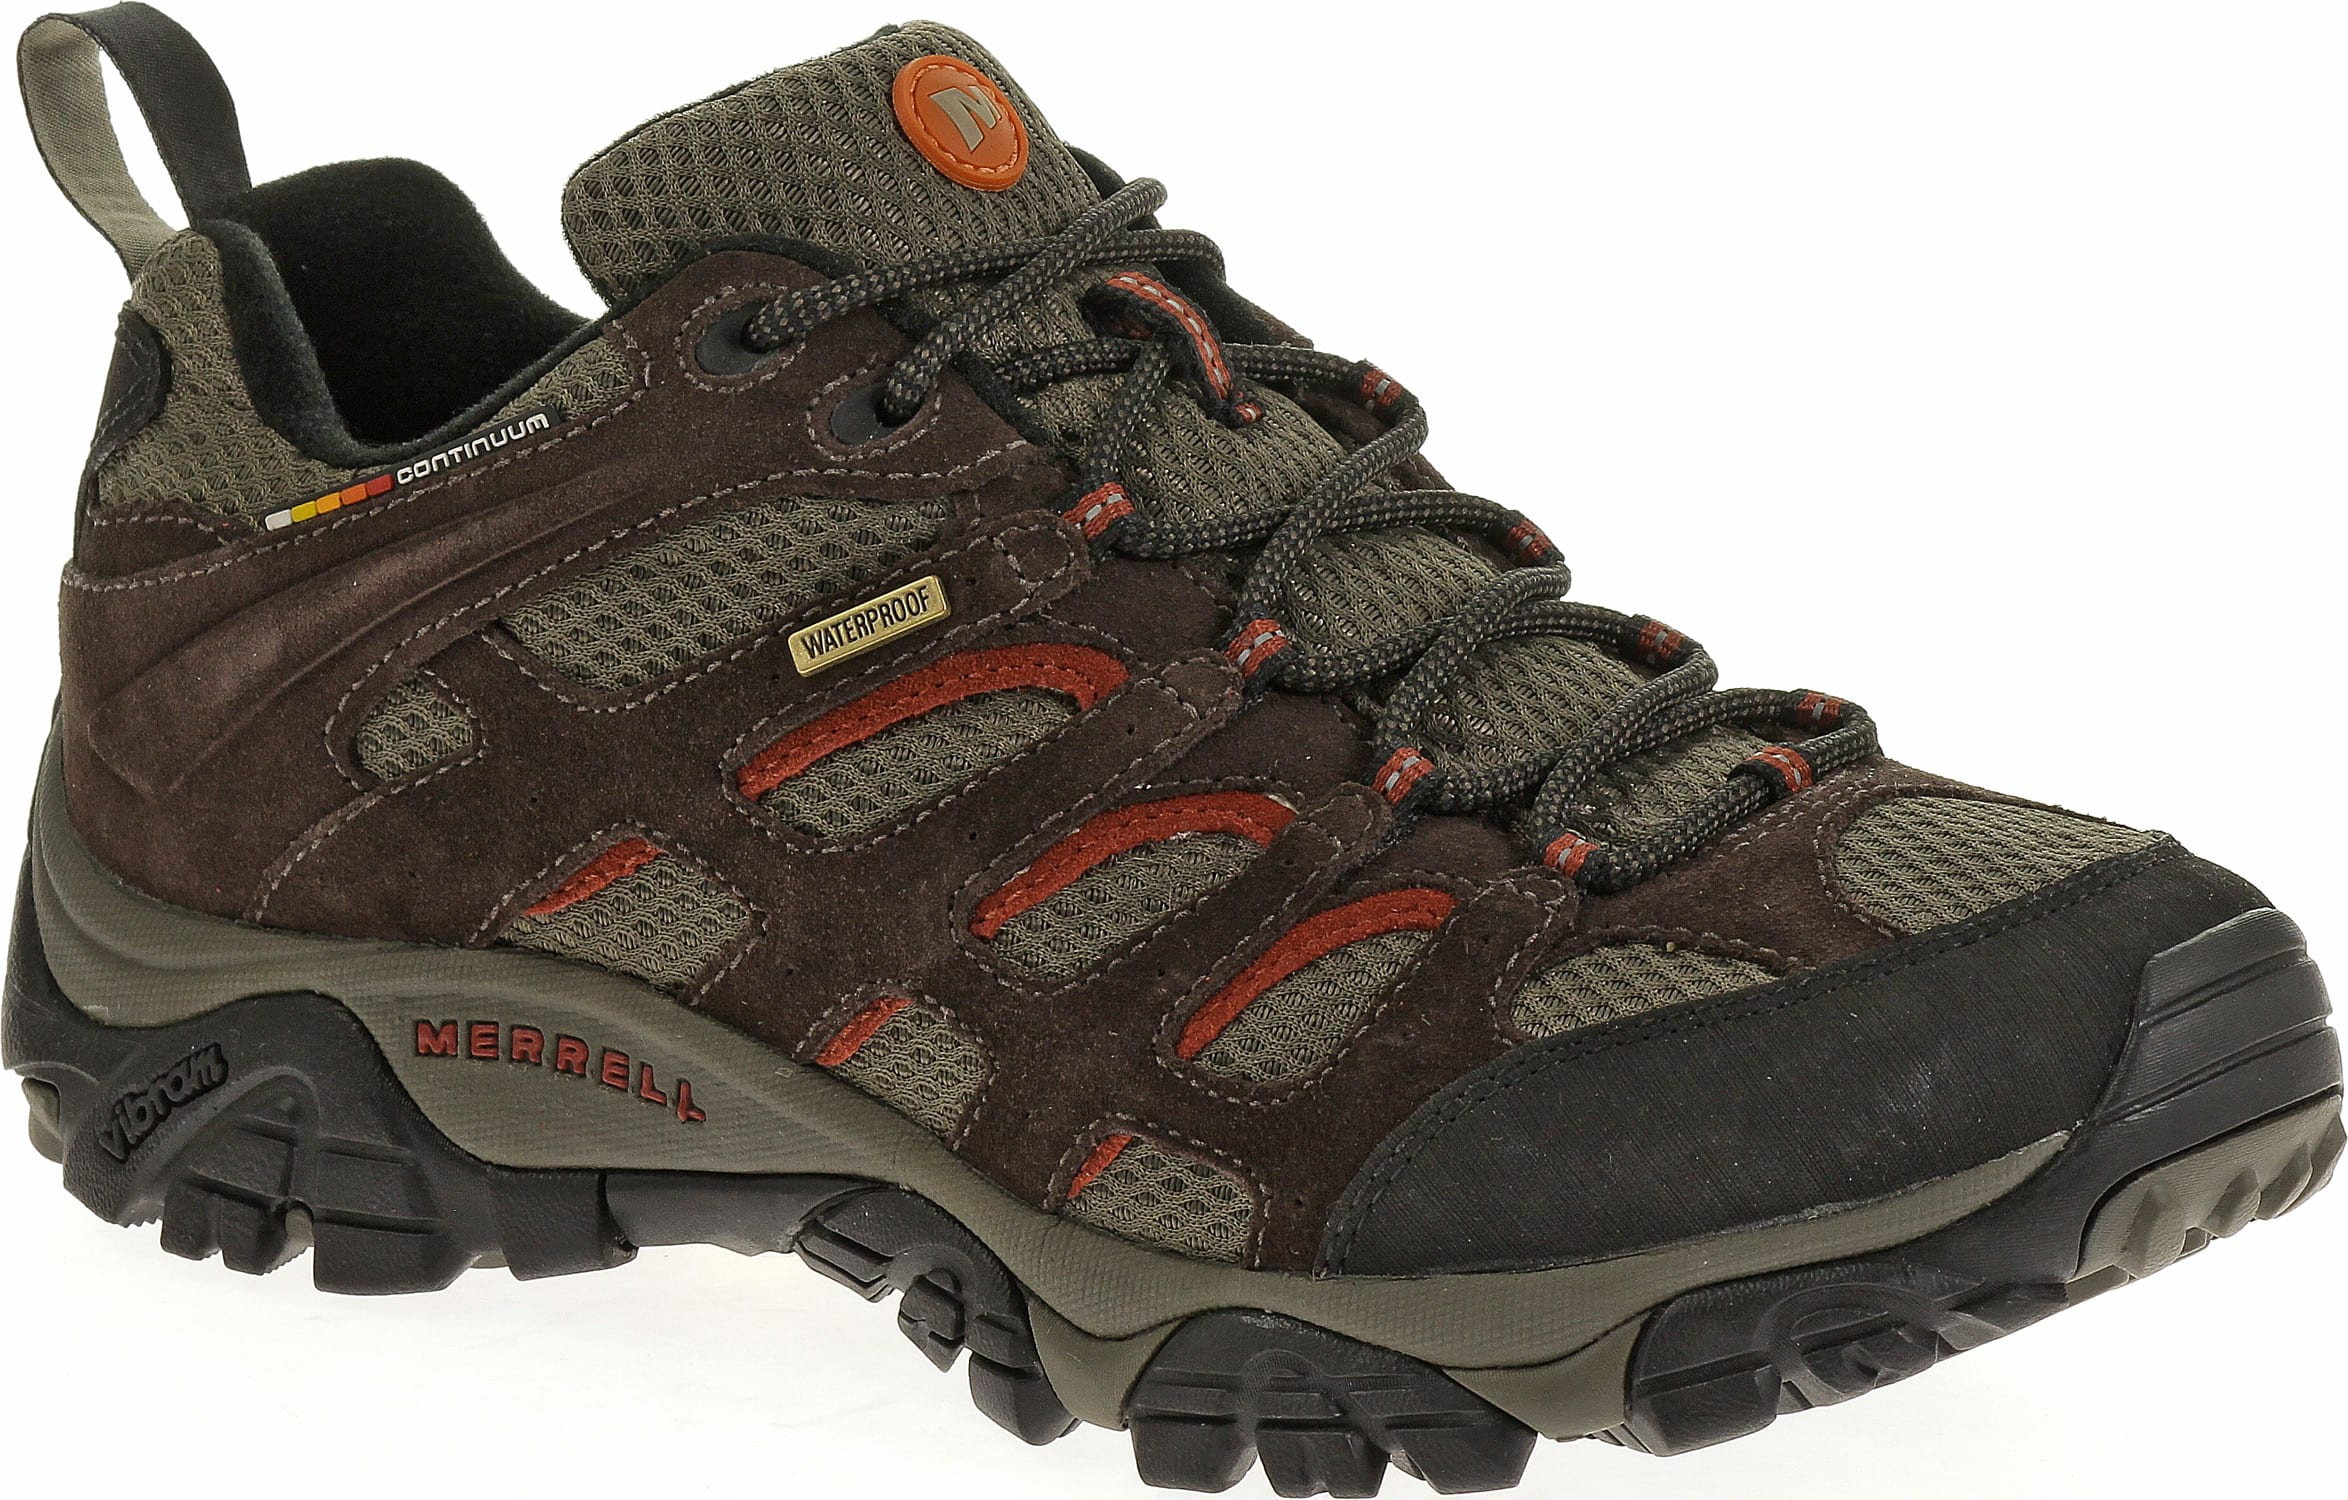 Merrells Womens Waterproof Hiking Shoes